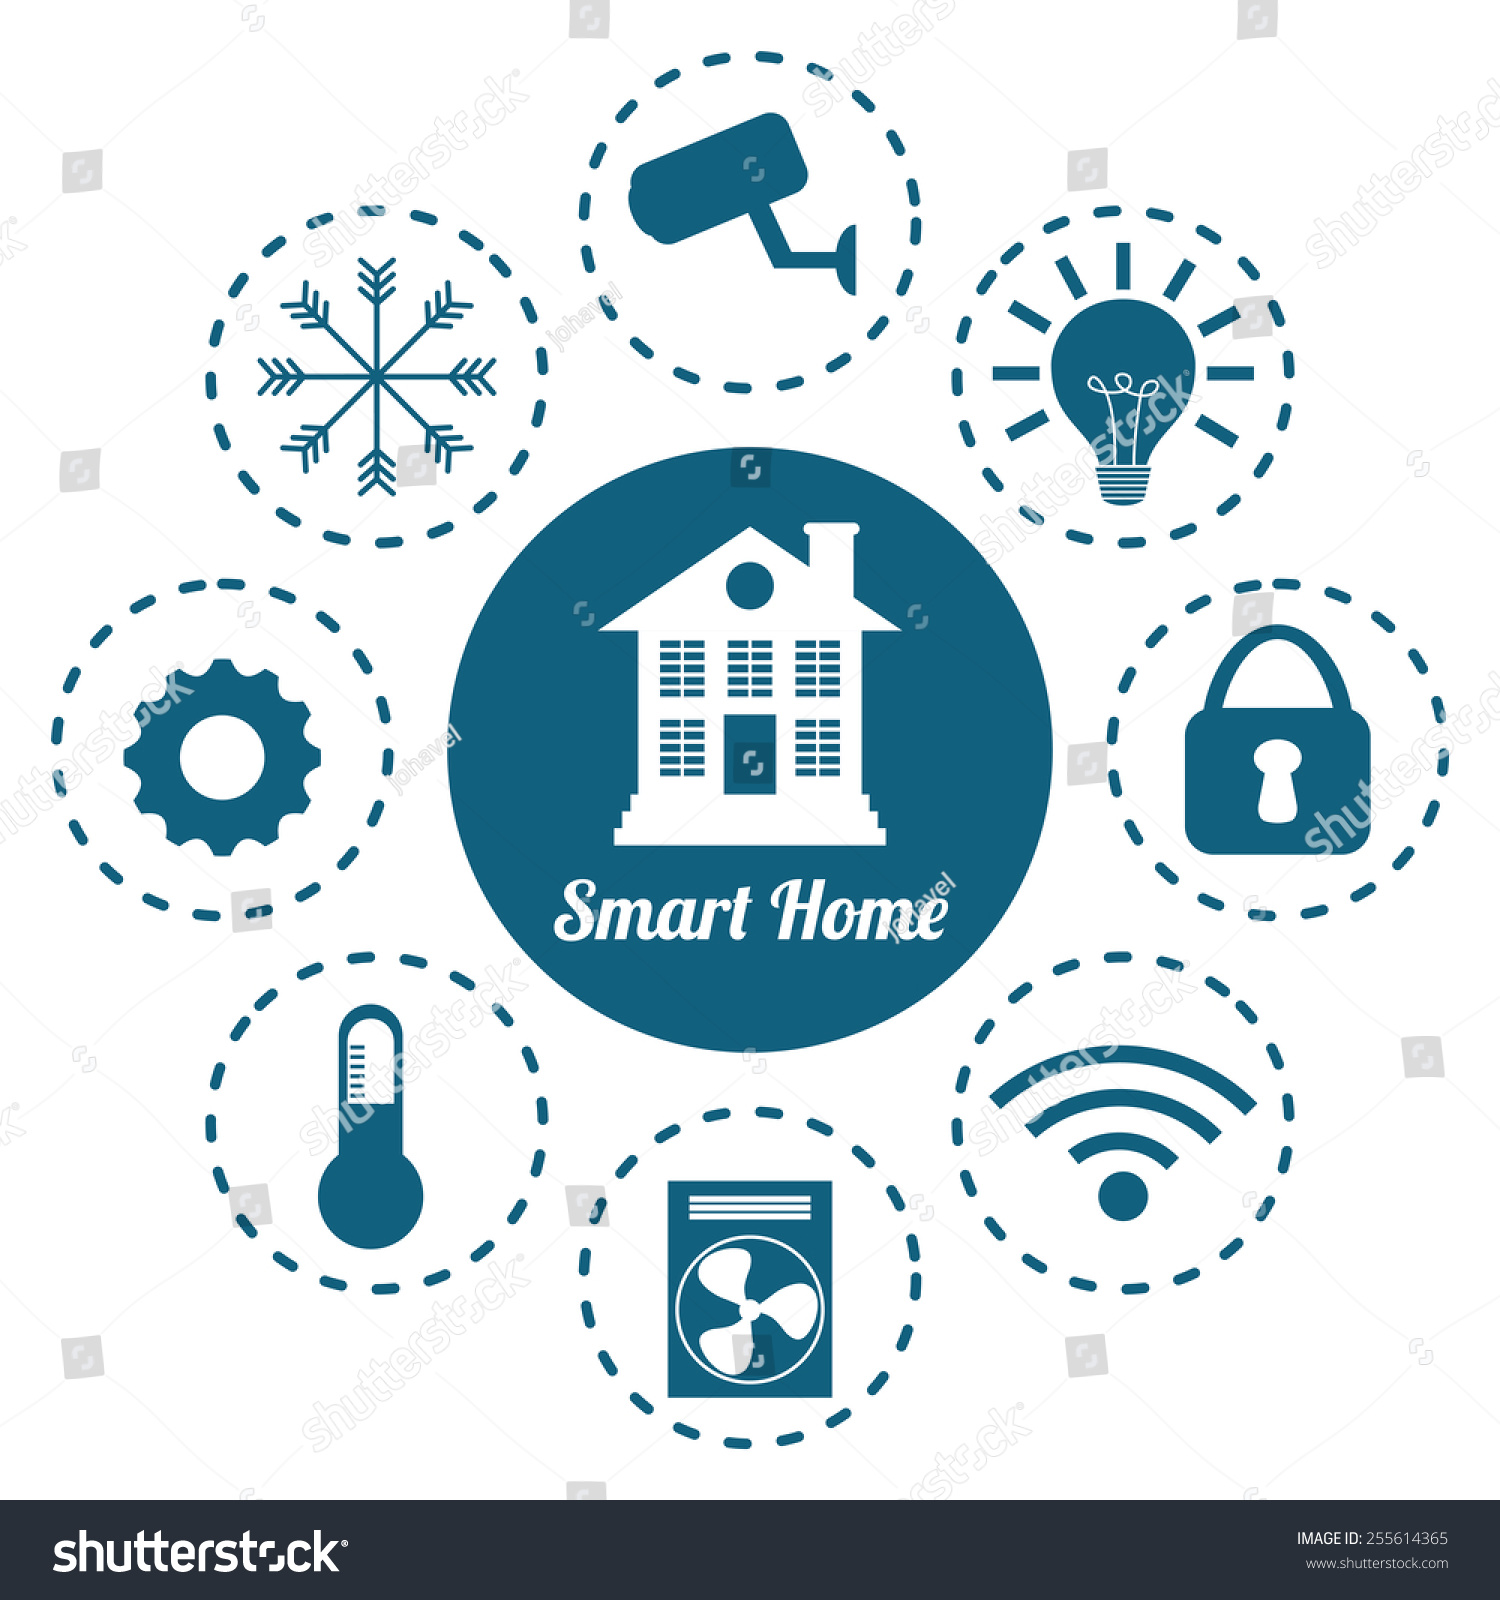 Smart Home Design Vector Illustration Eps10 Stock Vector 255614365 ...